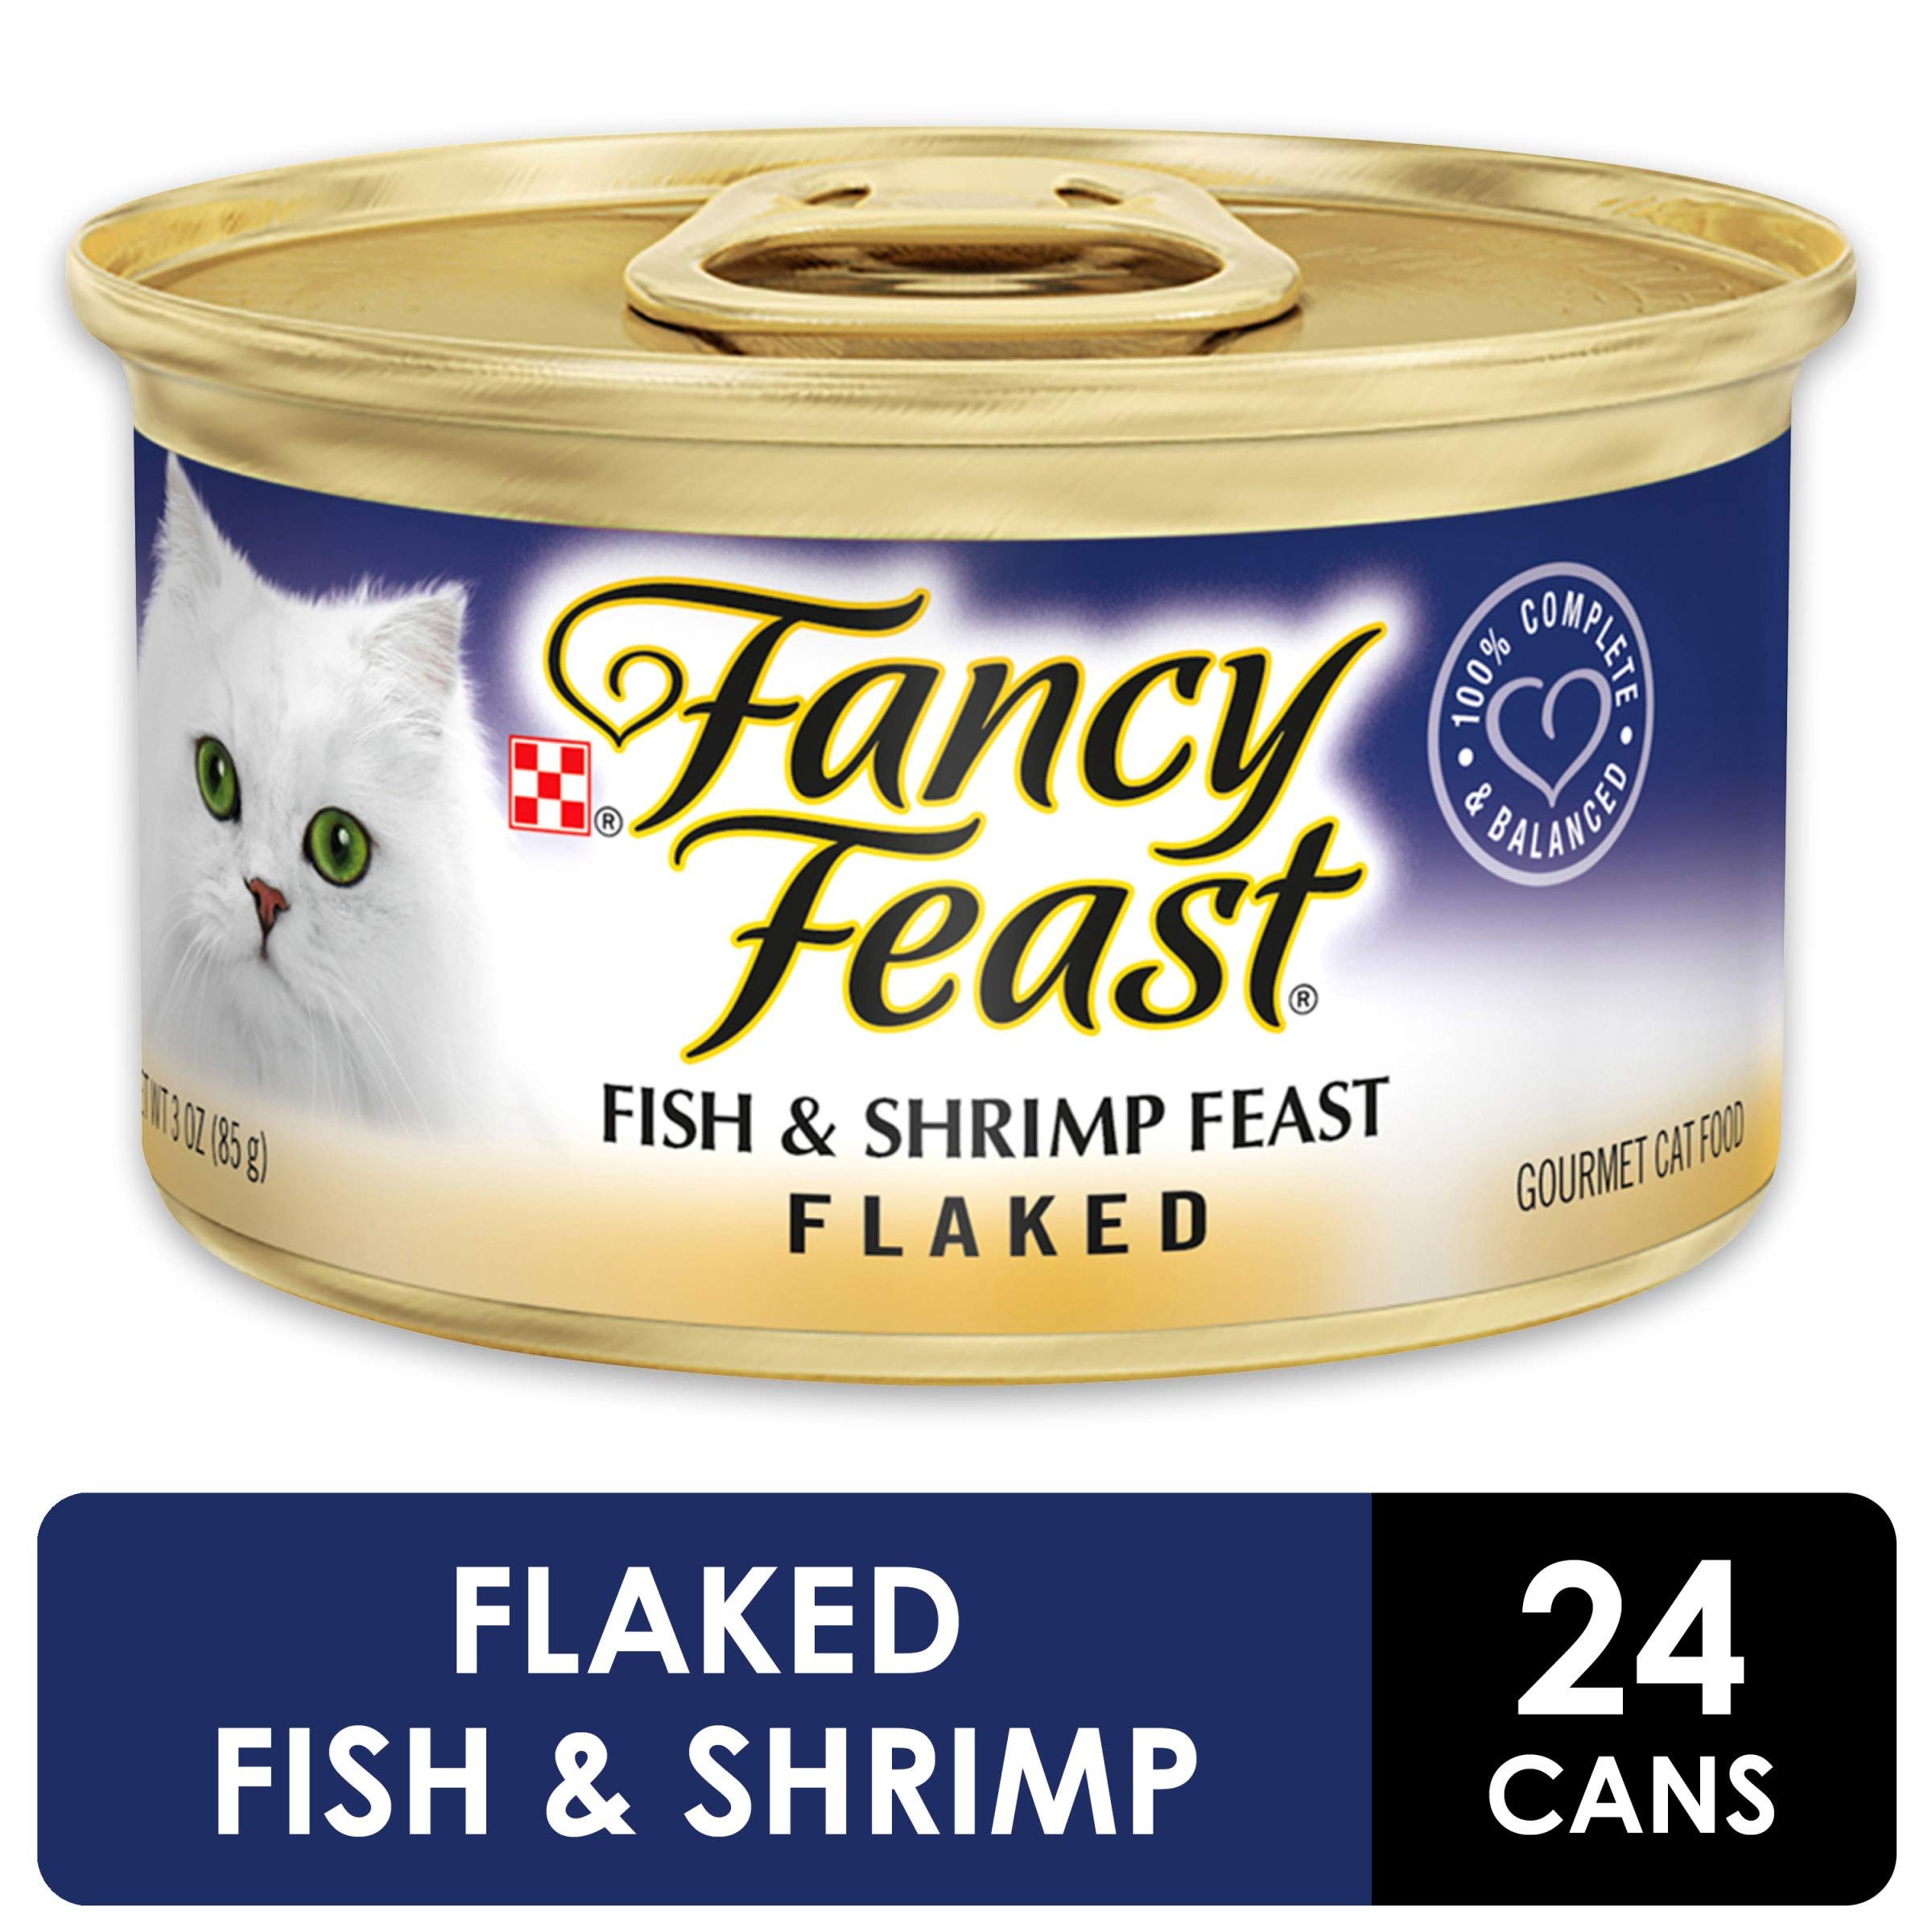 Purina Fancy Feast Wet Cat Food, Flaked Fish & Shrimp Feast - (24) 3 oz. Cans by Purina Fancy Feast